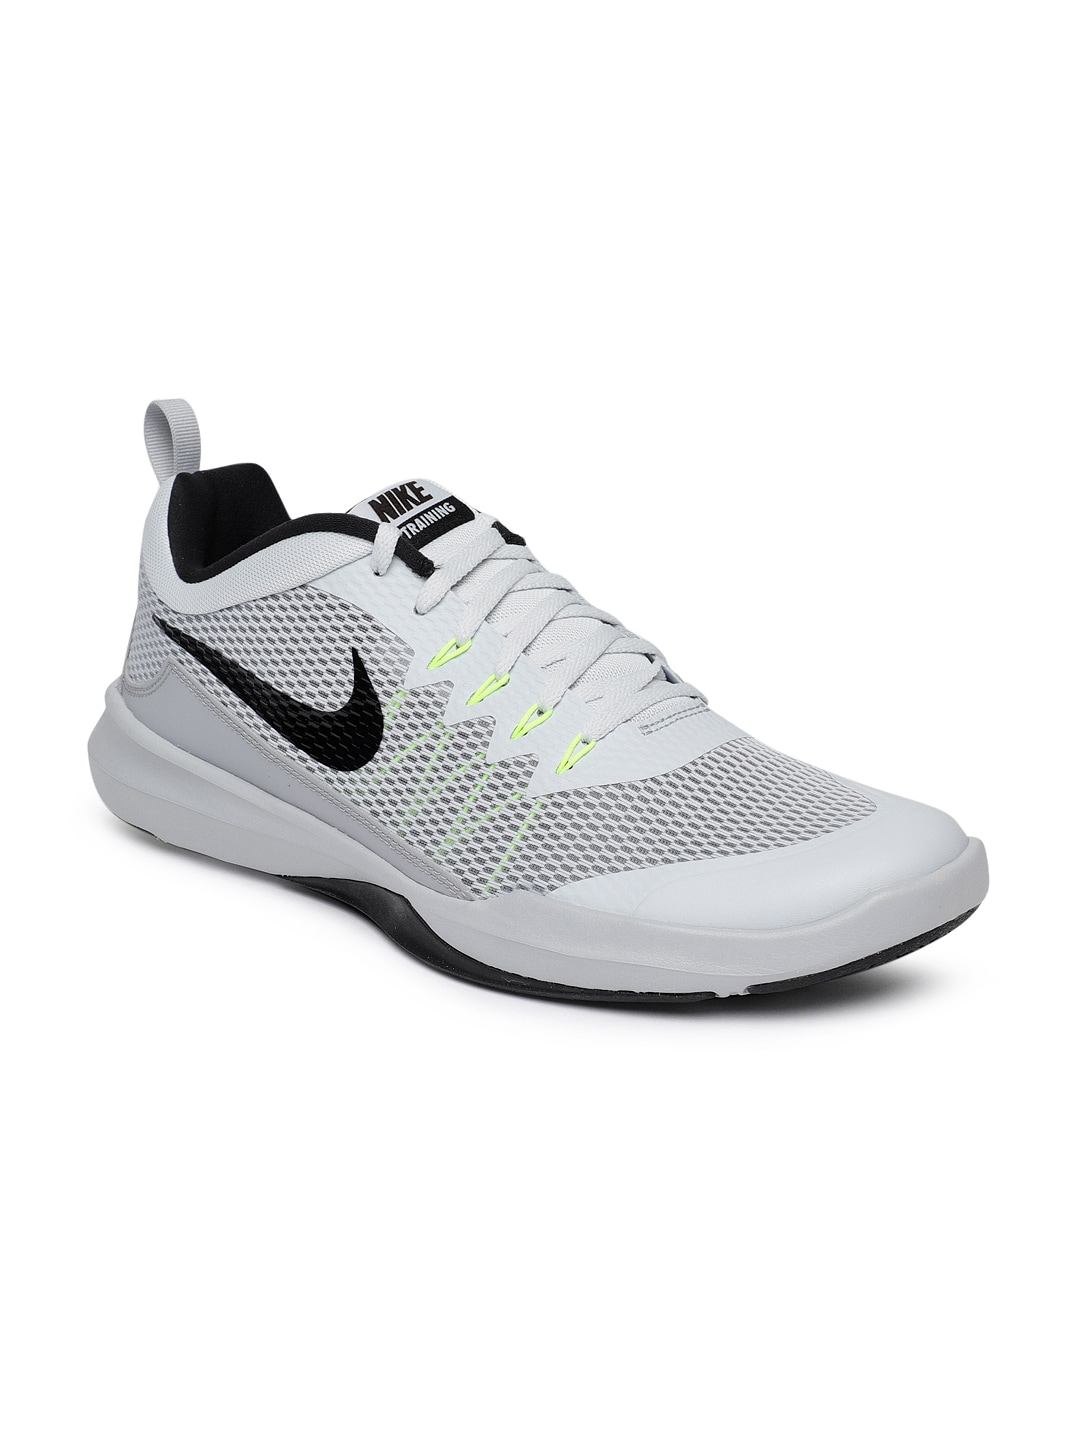 4de9d650502 Nike Shoes - Buy Nike Shoes for Men